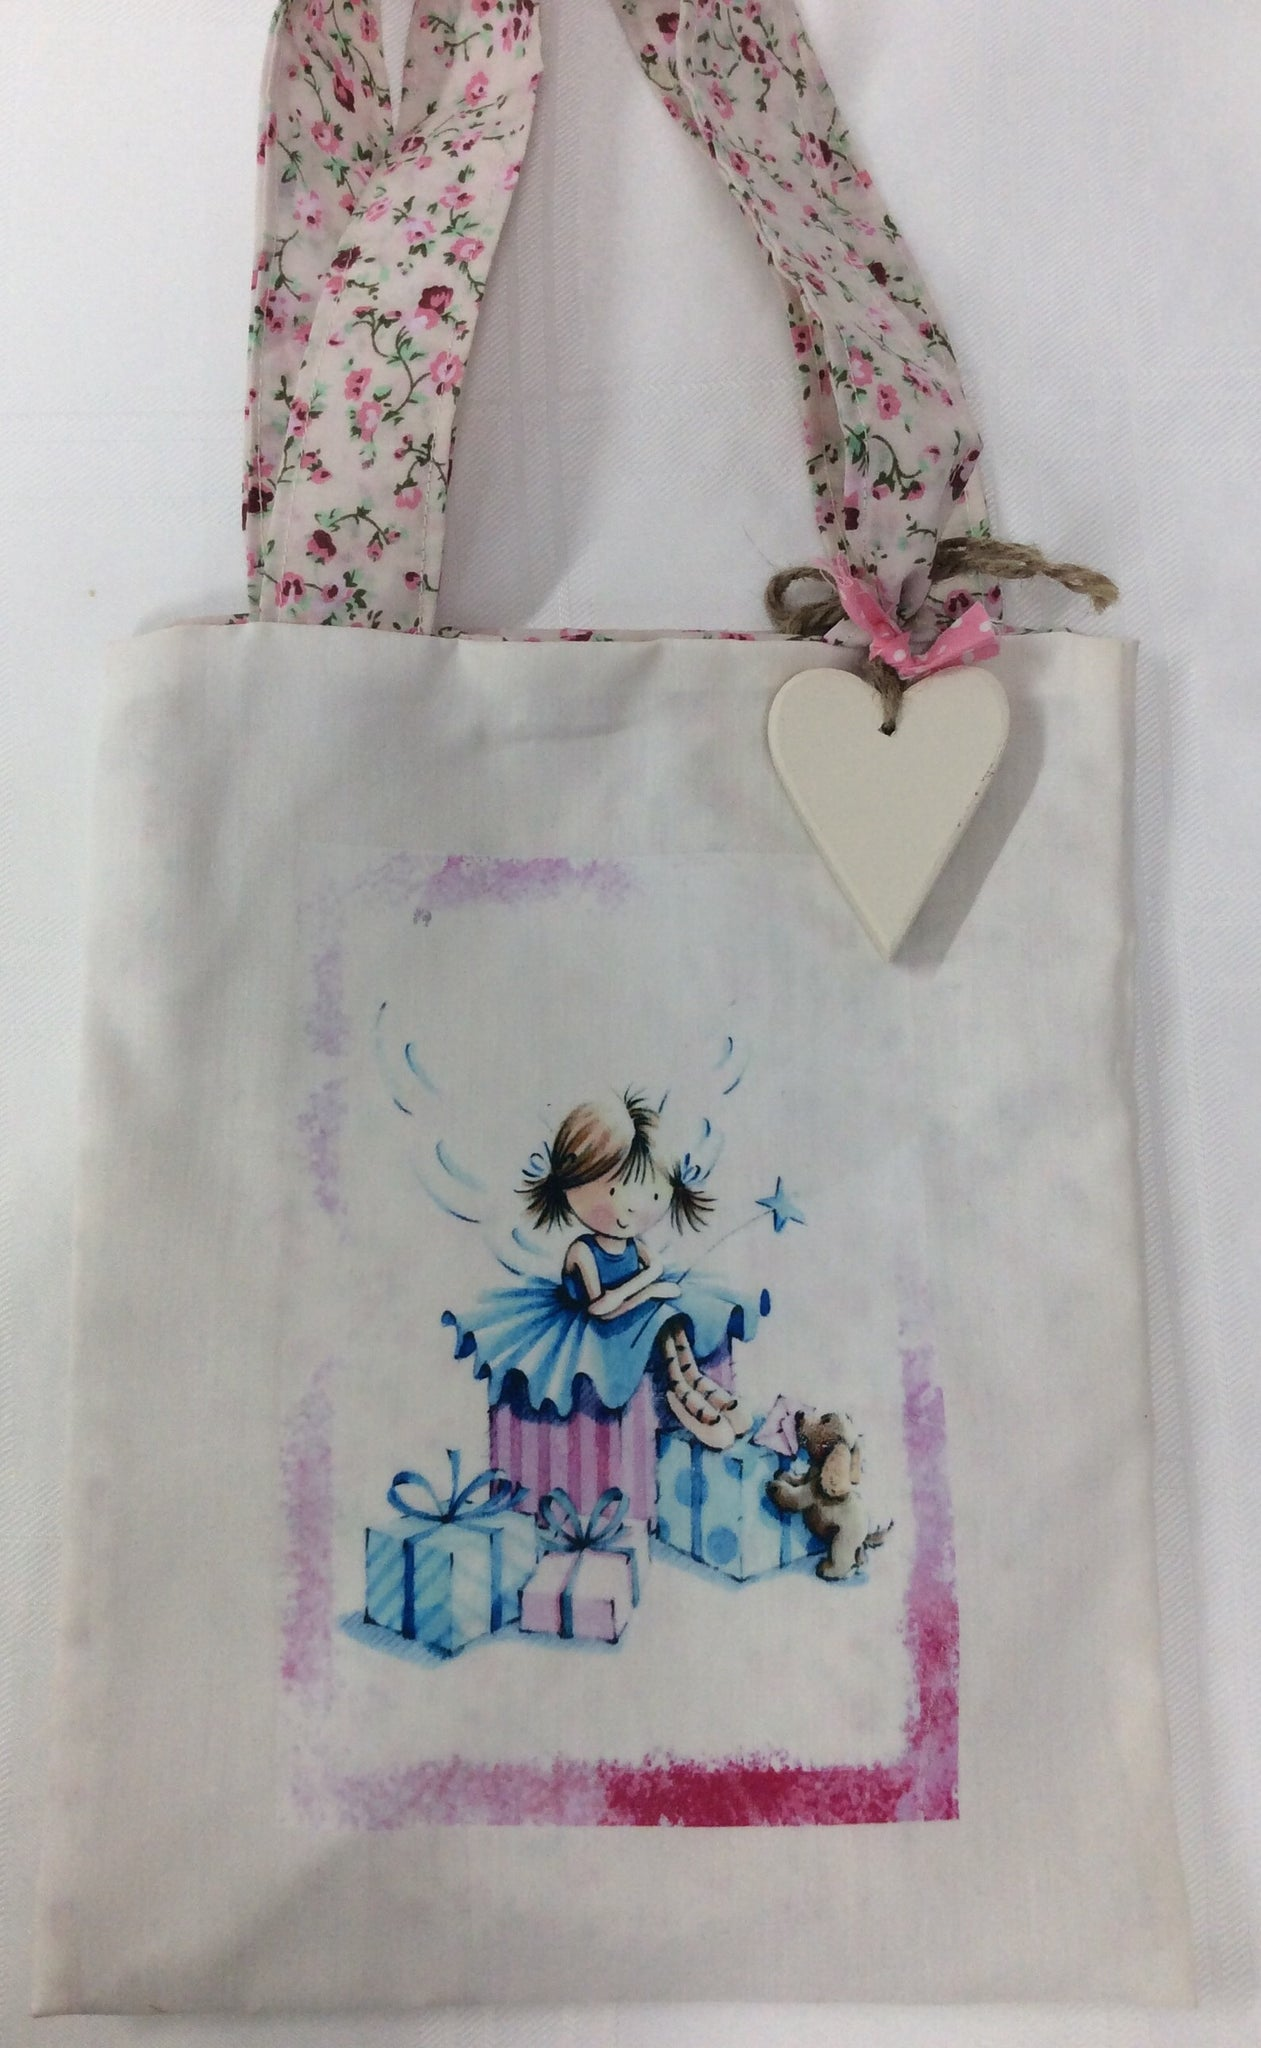 Children's handmade bag with personalised wooden heart with fairy and presents design.